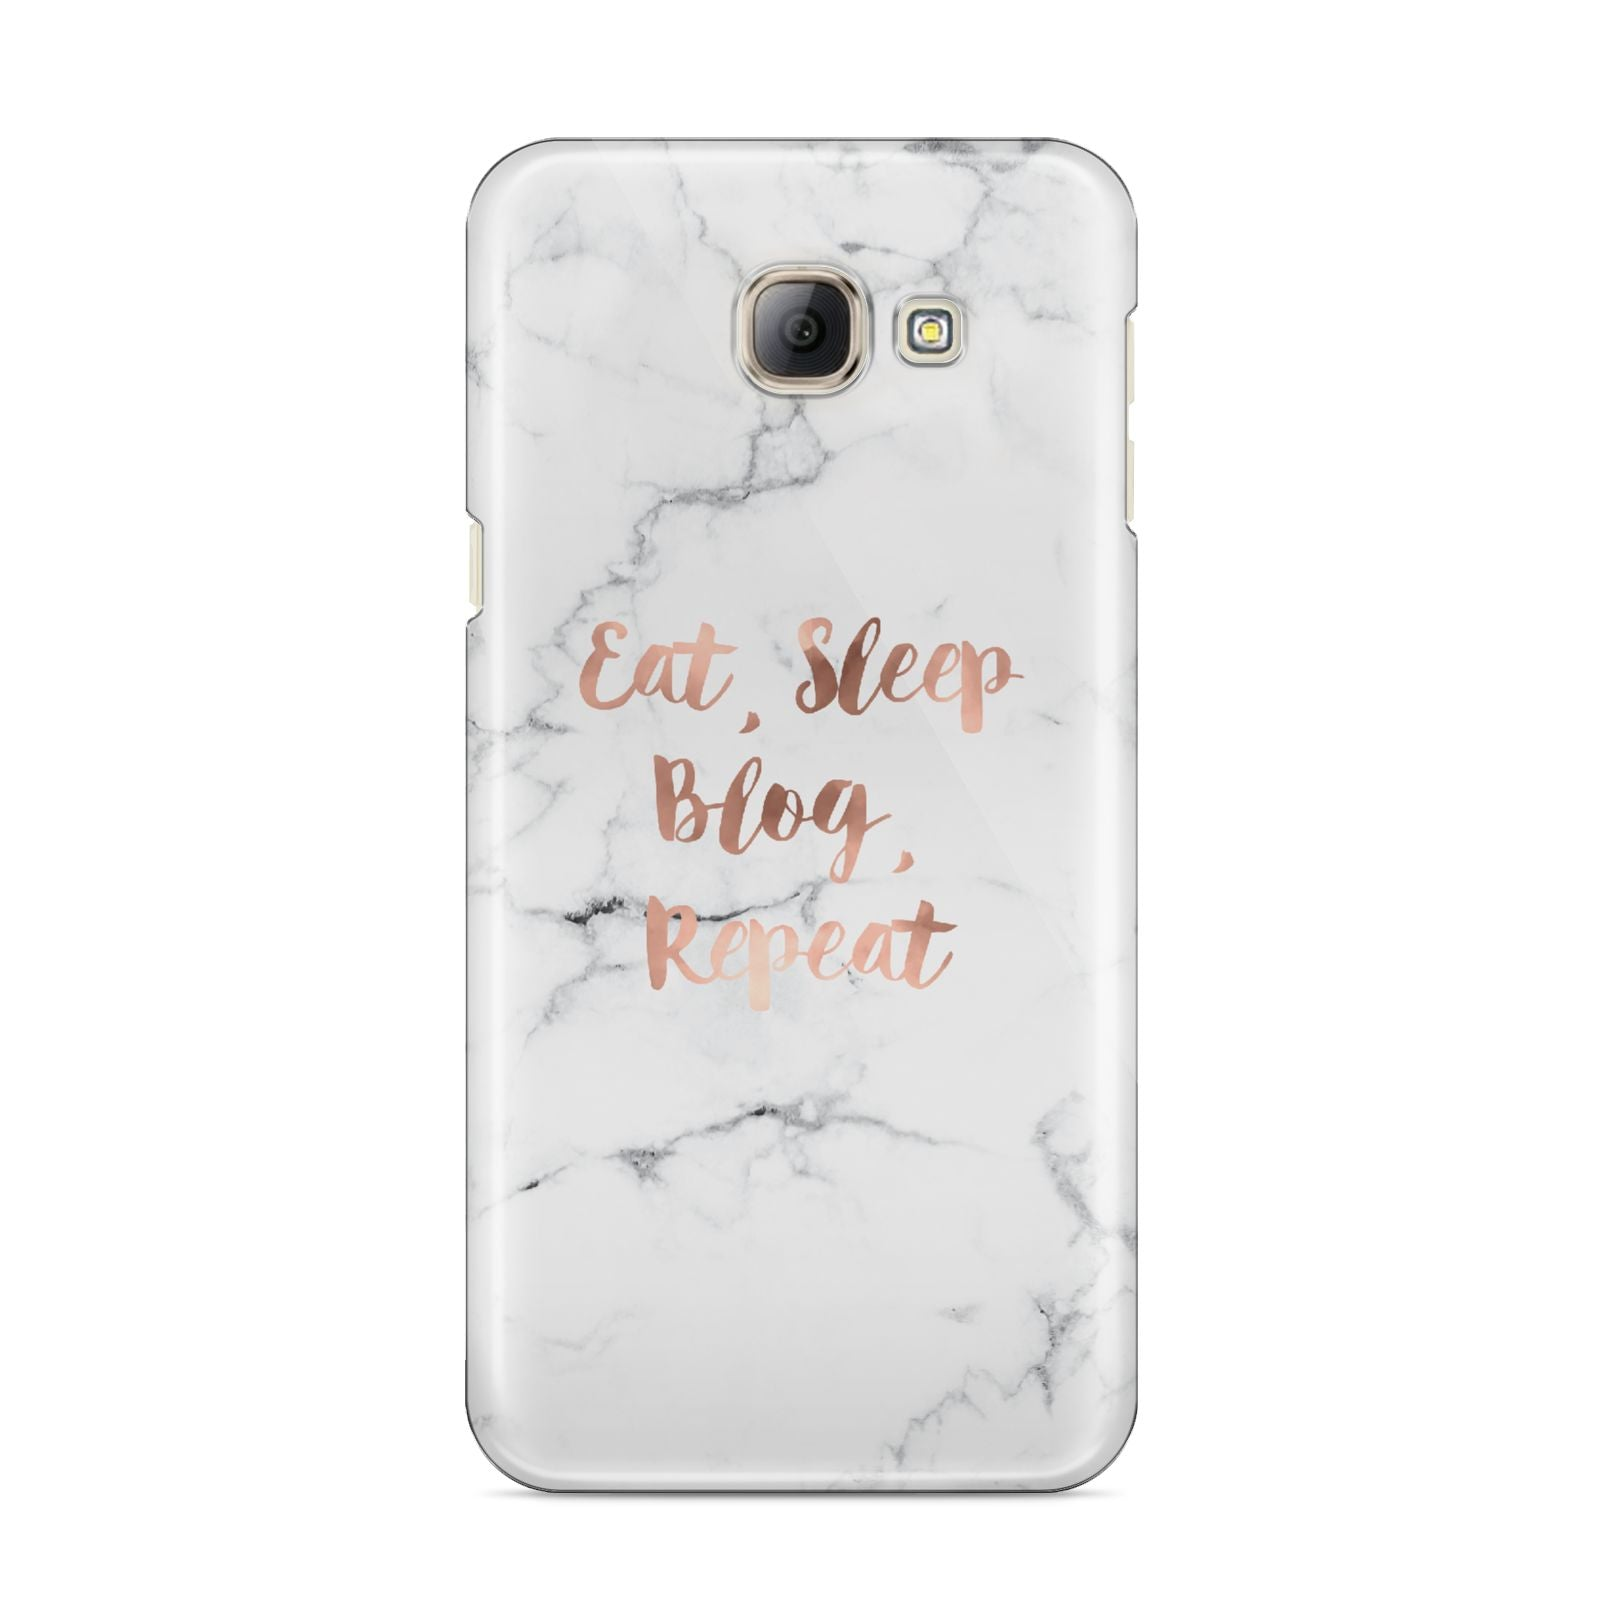 Eat Sleep Blog Repeat Marble Effect Samsung Galaxy A8 2016 Case